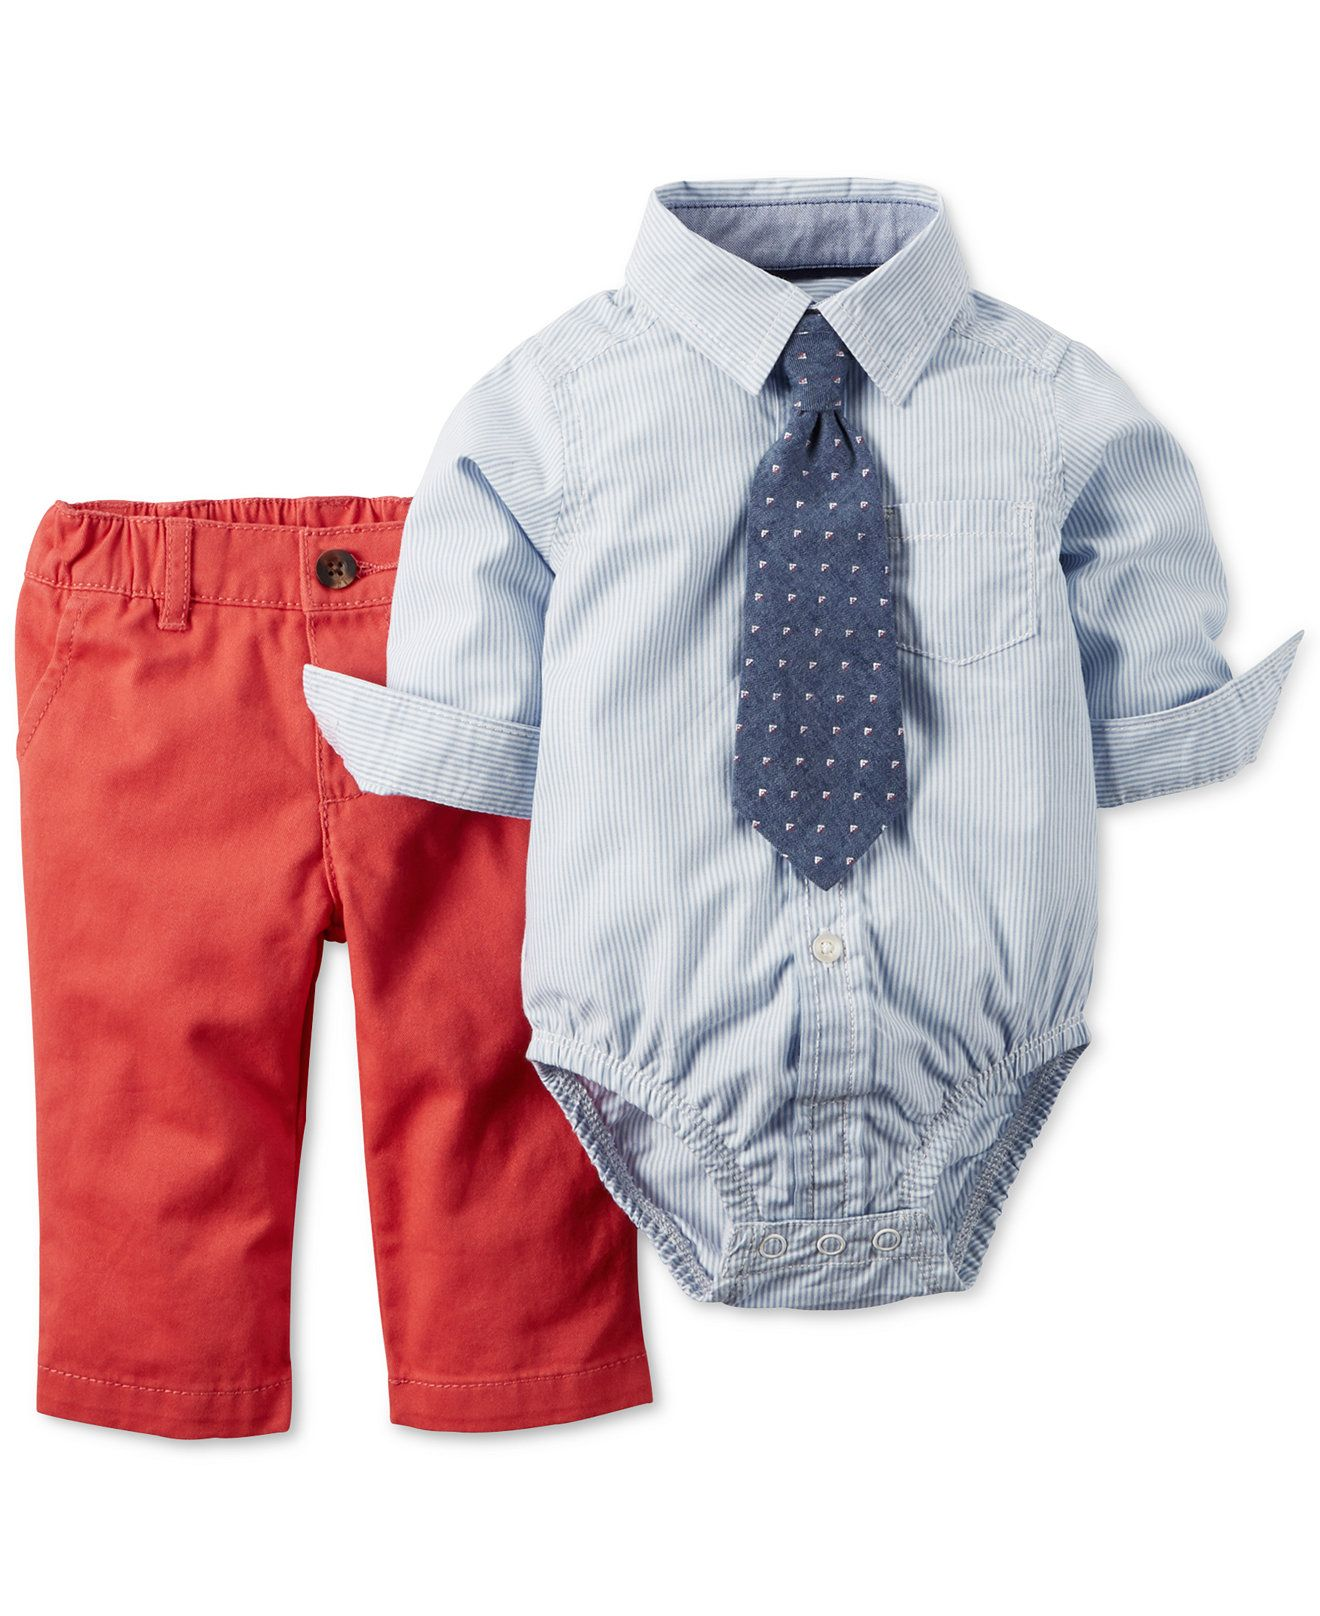 Turquoise Boys Dress Clothes